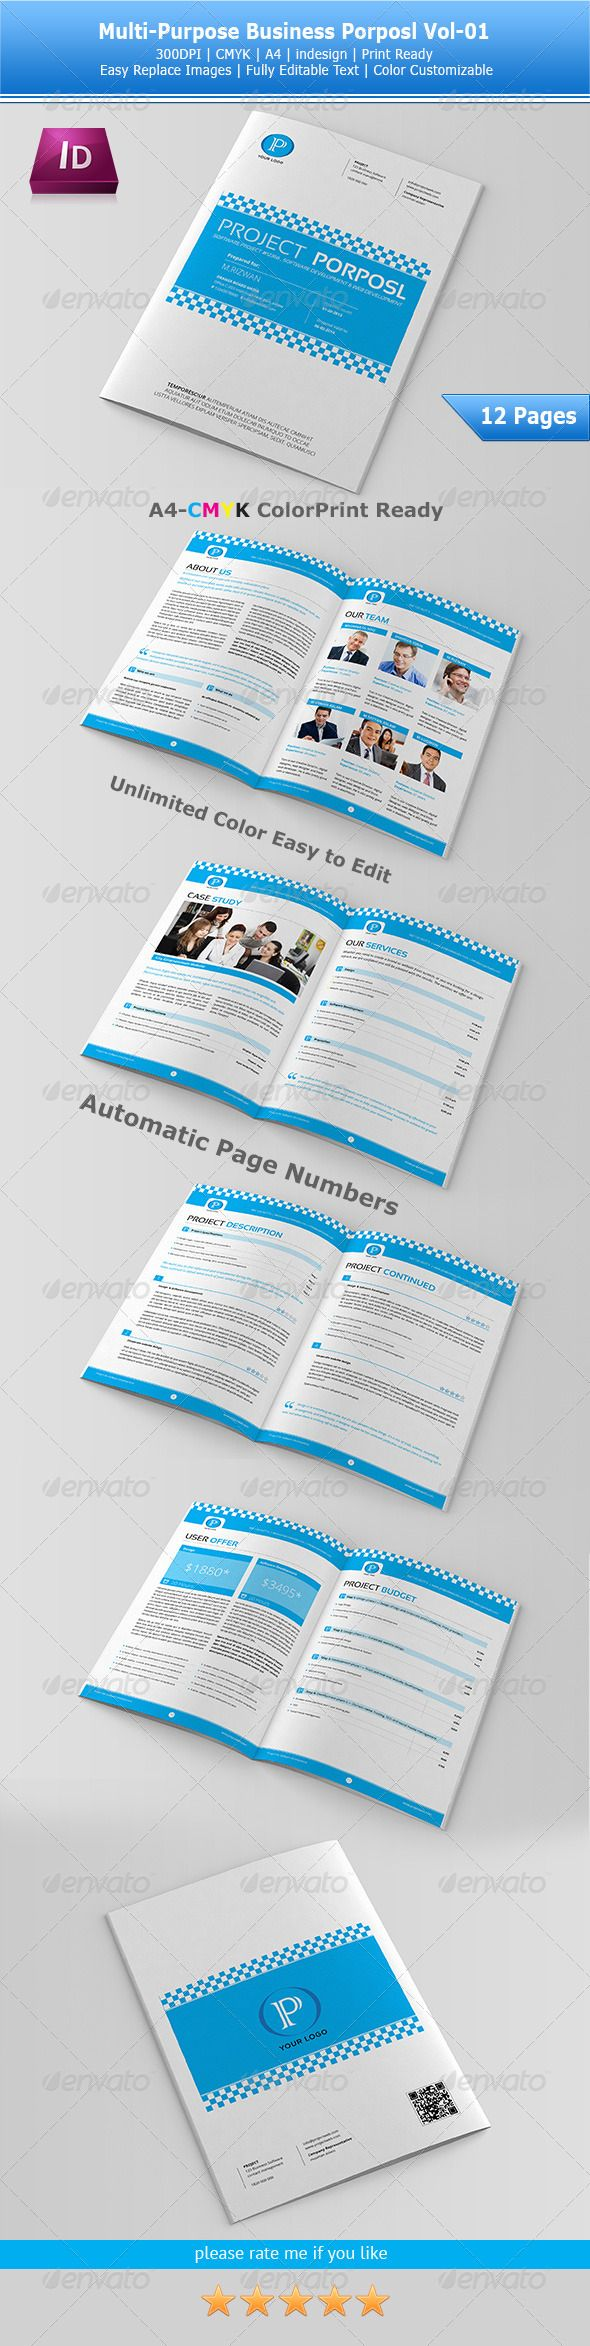 Multipurpose Business Proposal Template Vol-01 #GraphicRiver This is a modern and powerful template for a Brochure. The format is A4 (8.2×11.6 inches) with 3 mm / 0.125 inches bleed all around. The files are fully editable and print ready. The images are not included. Paragraph and character styles included, Features: indesign Cs6 and idml cs4 file Fonts Used: .fontsquirrel /fonts/download/Sansation .fontsquirrel /fonts/download/open-sans Created: 8May13 GraphicsFilesIncluded: InDesignINDD…